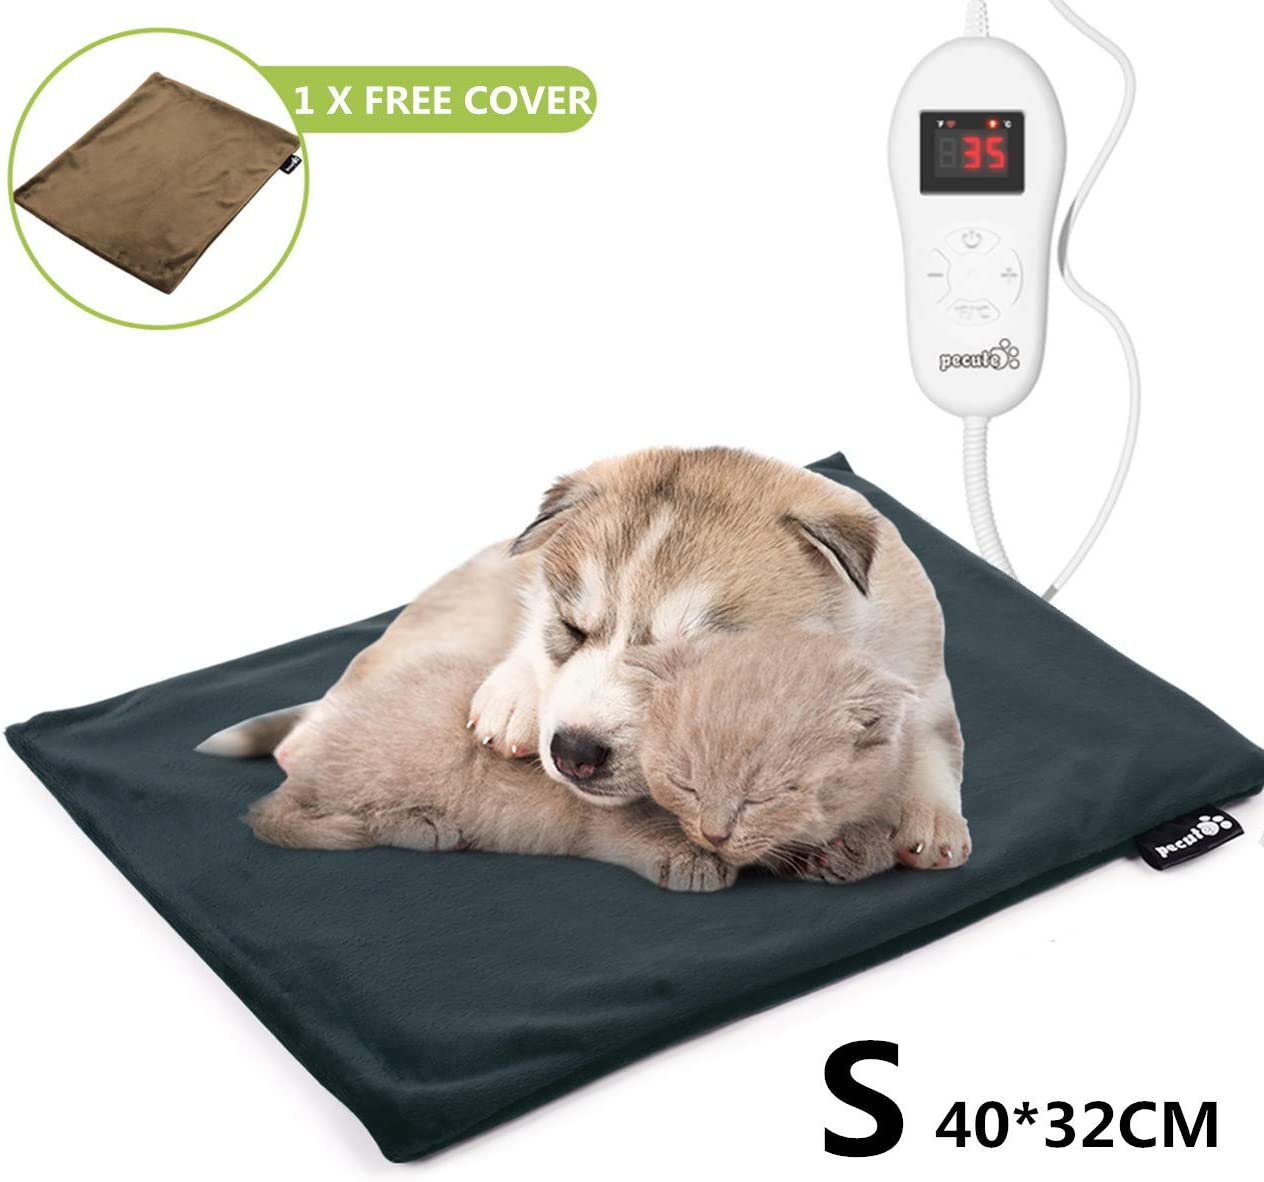 Pecute Pet Heating Pad 5 Adjustable Temperatures Safe Electric Heated Pet Mat for Dogs and Cats Waterproof Pet Bed Warmer with Chew Resistant Cord and Fire Retardant Cotton (2 Flannel Covers)